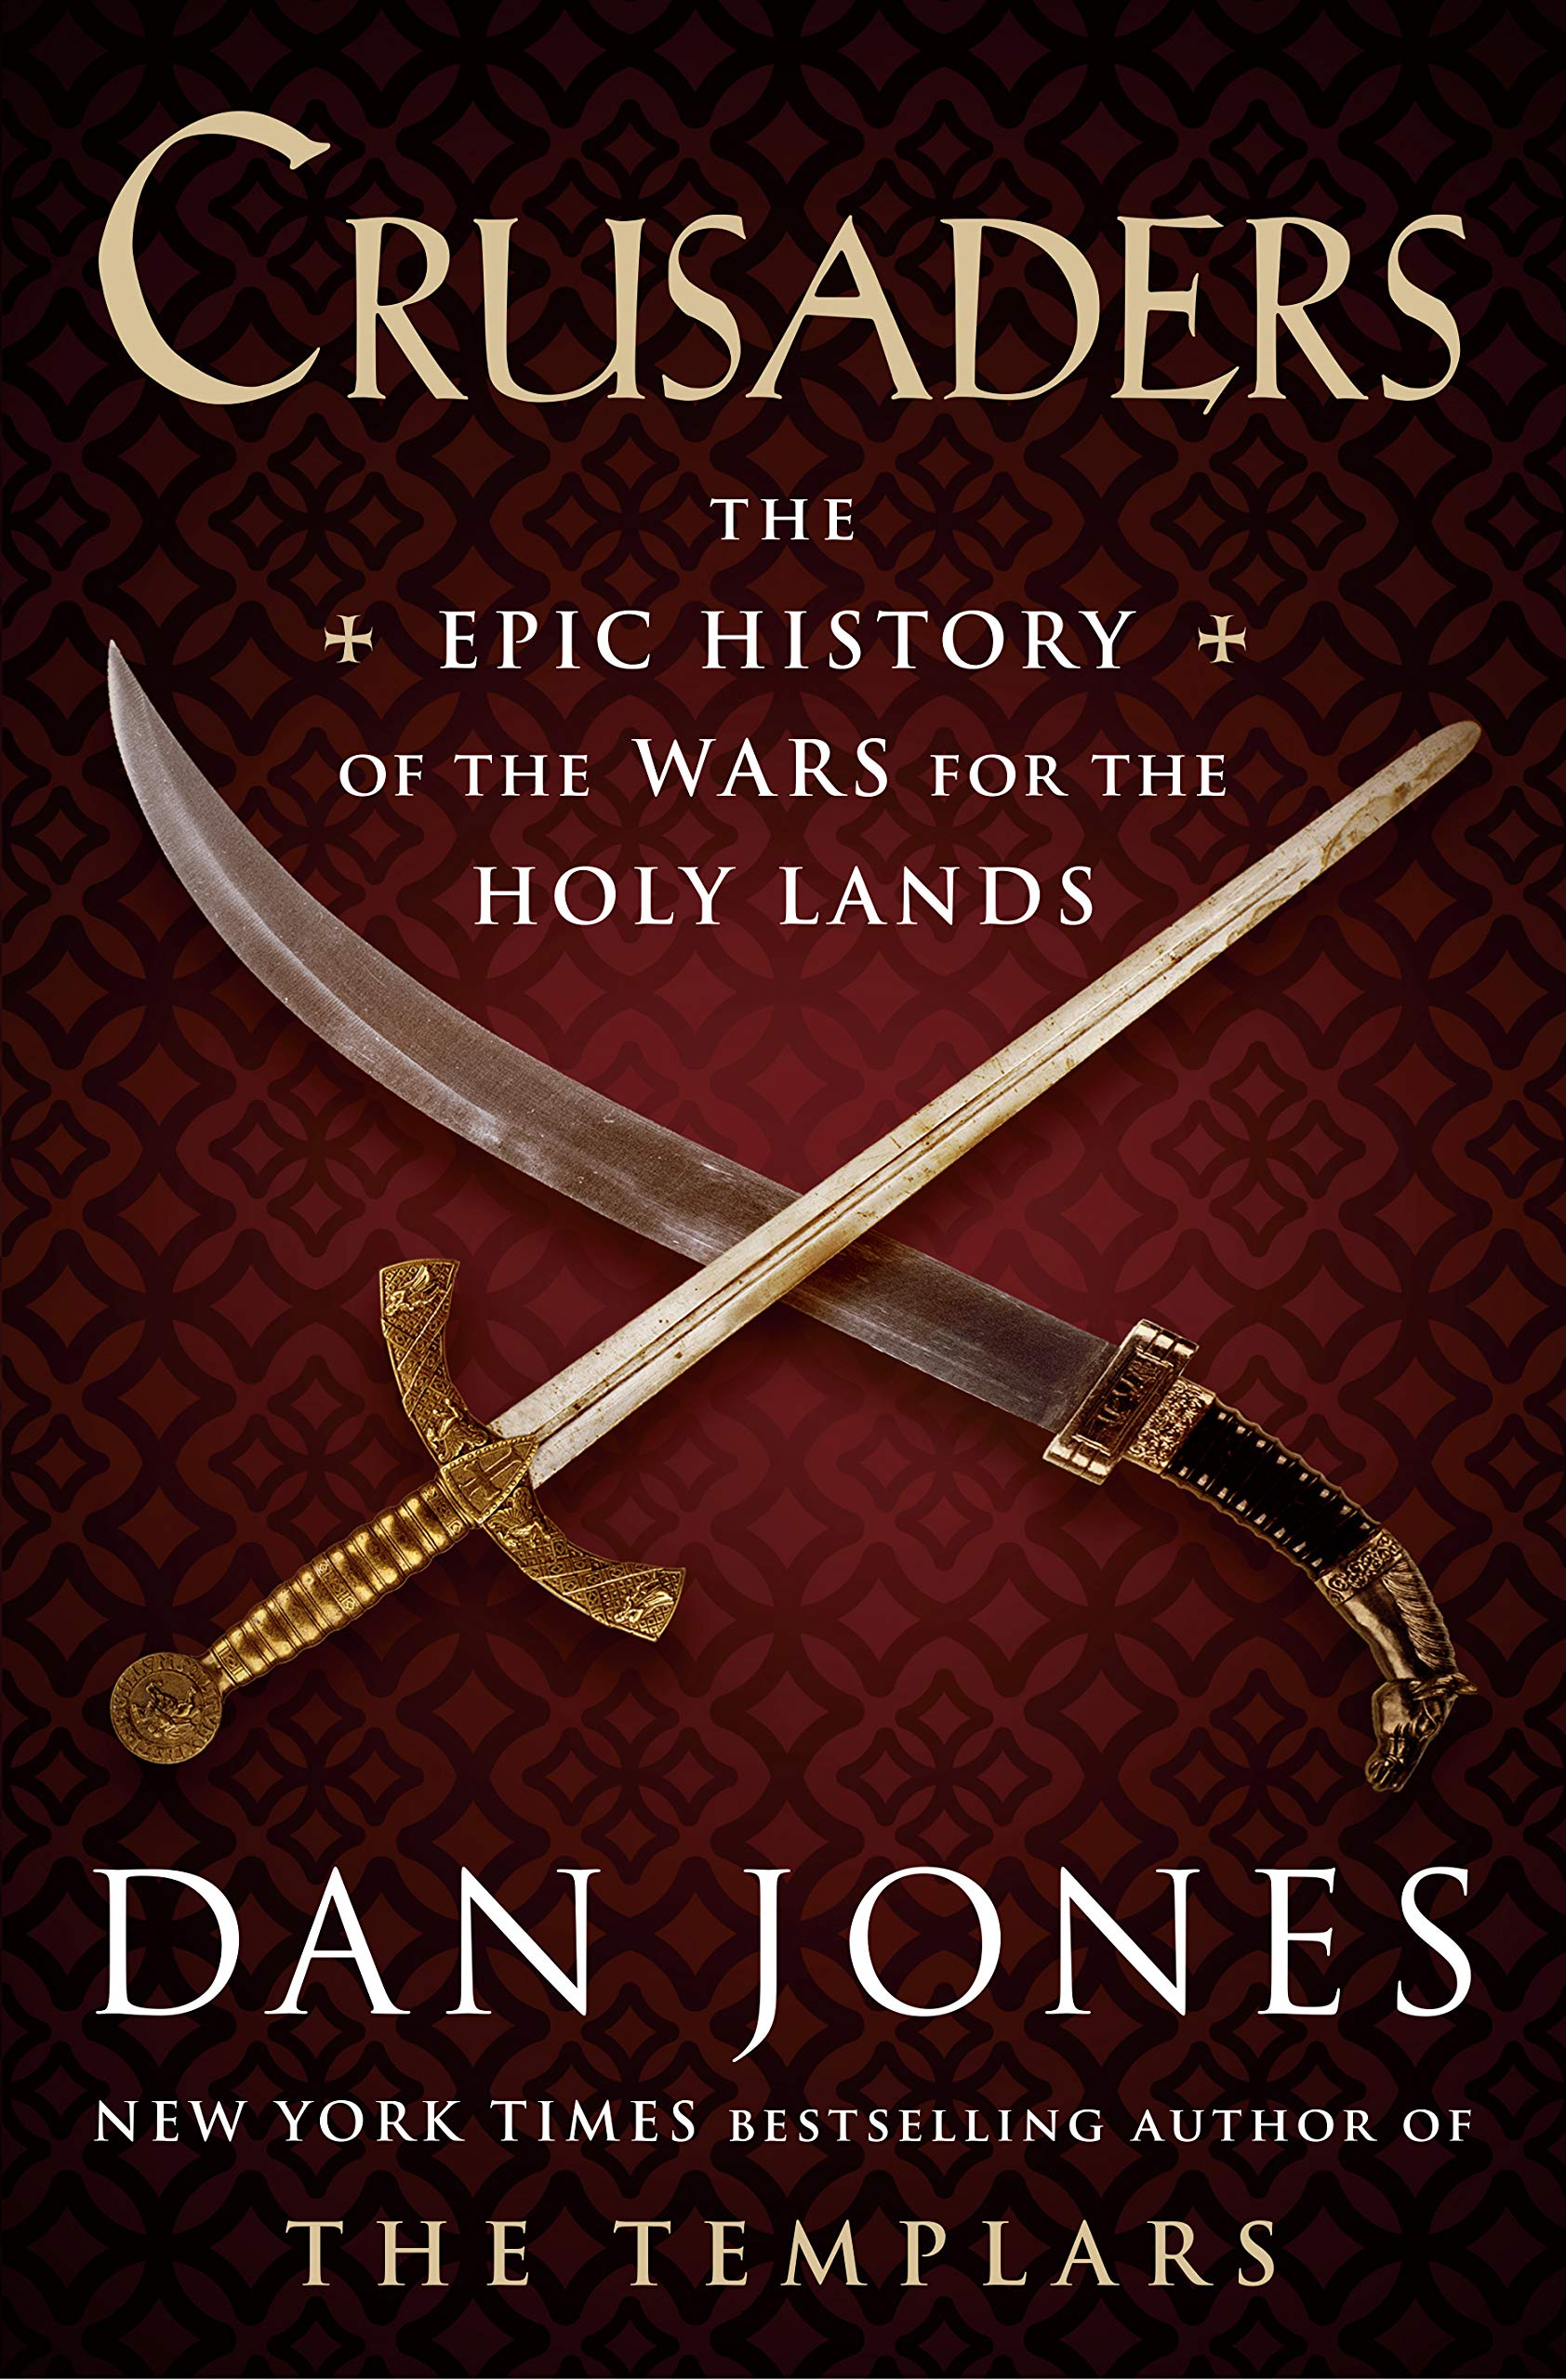 Crusaders: The Epic History of the Wars for the Holy Lands by Viking